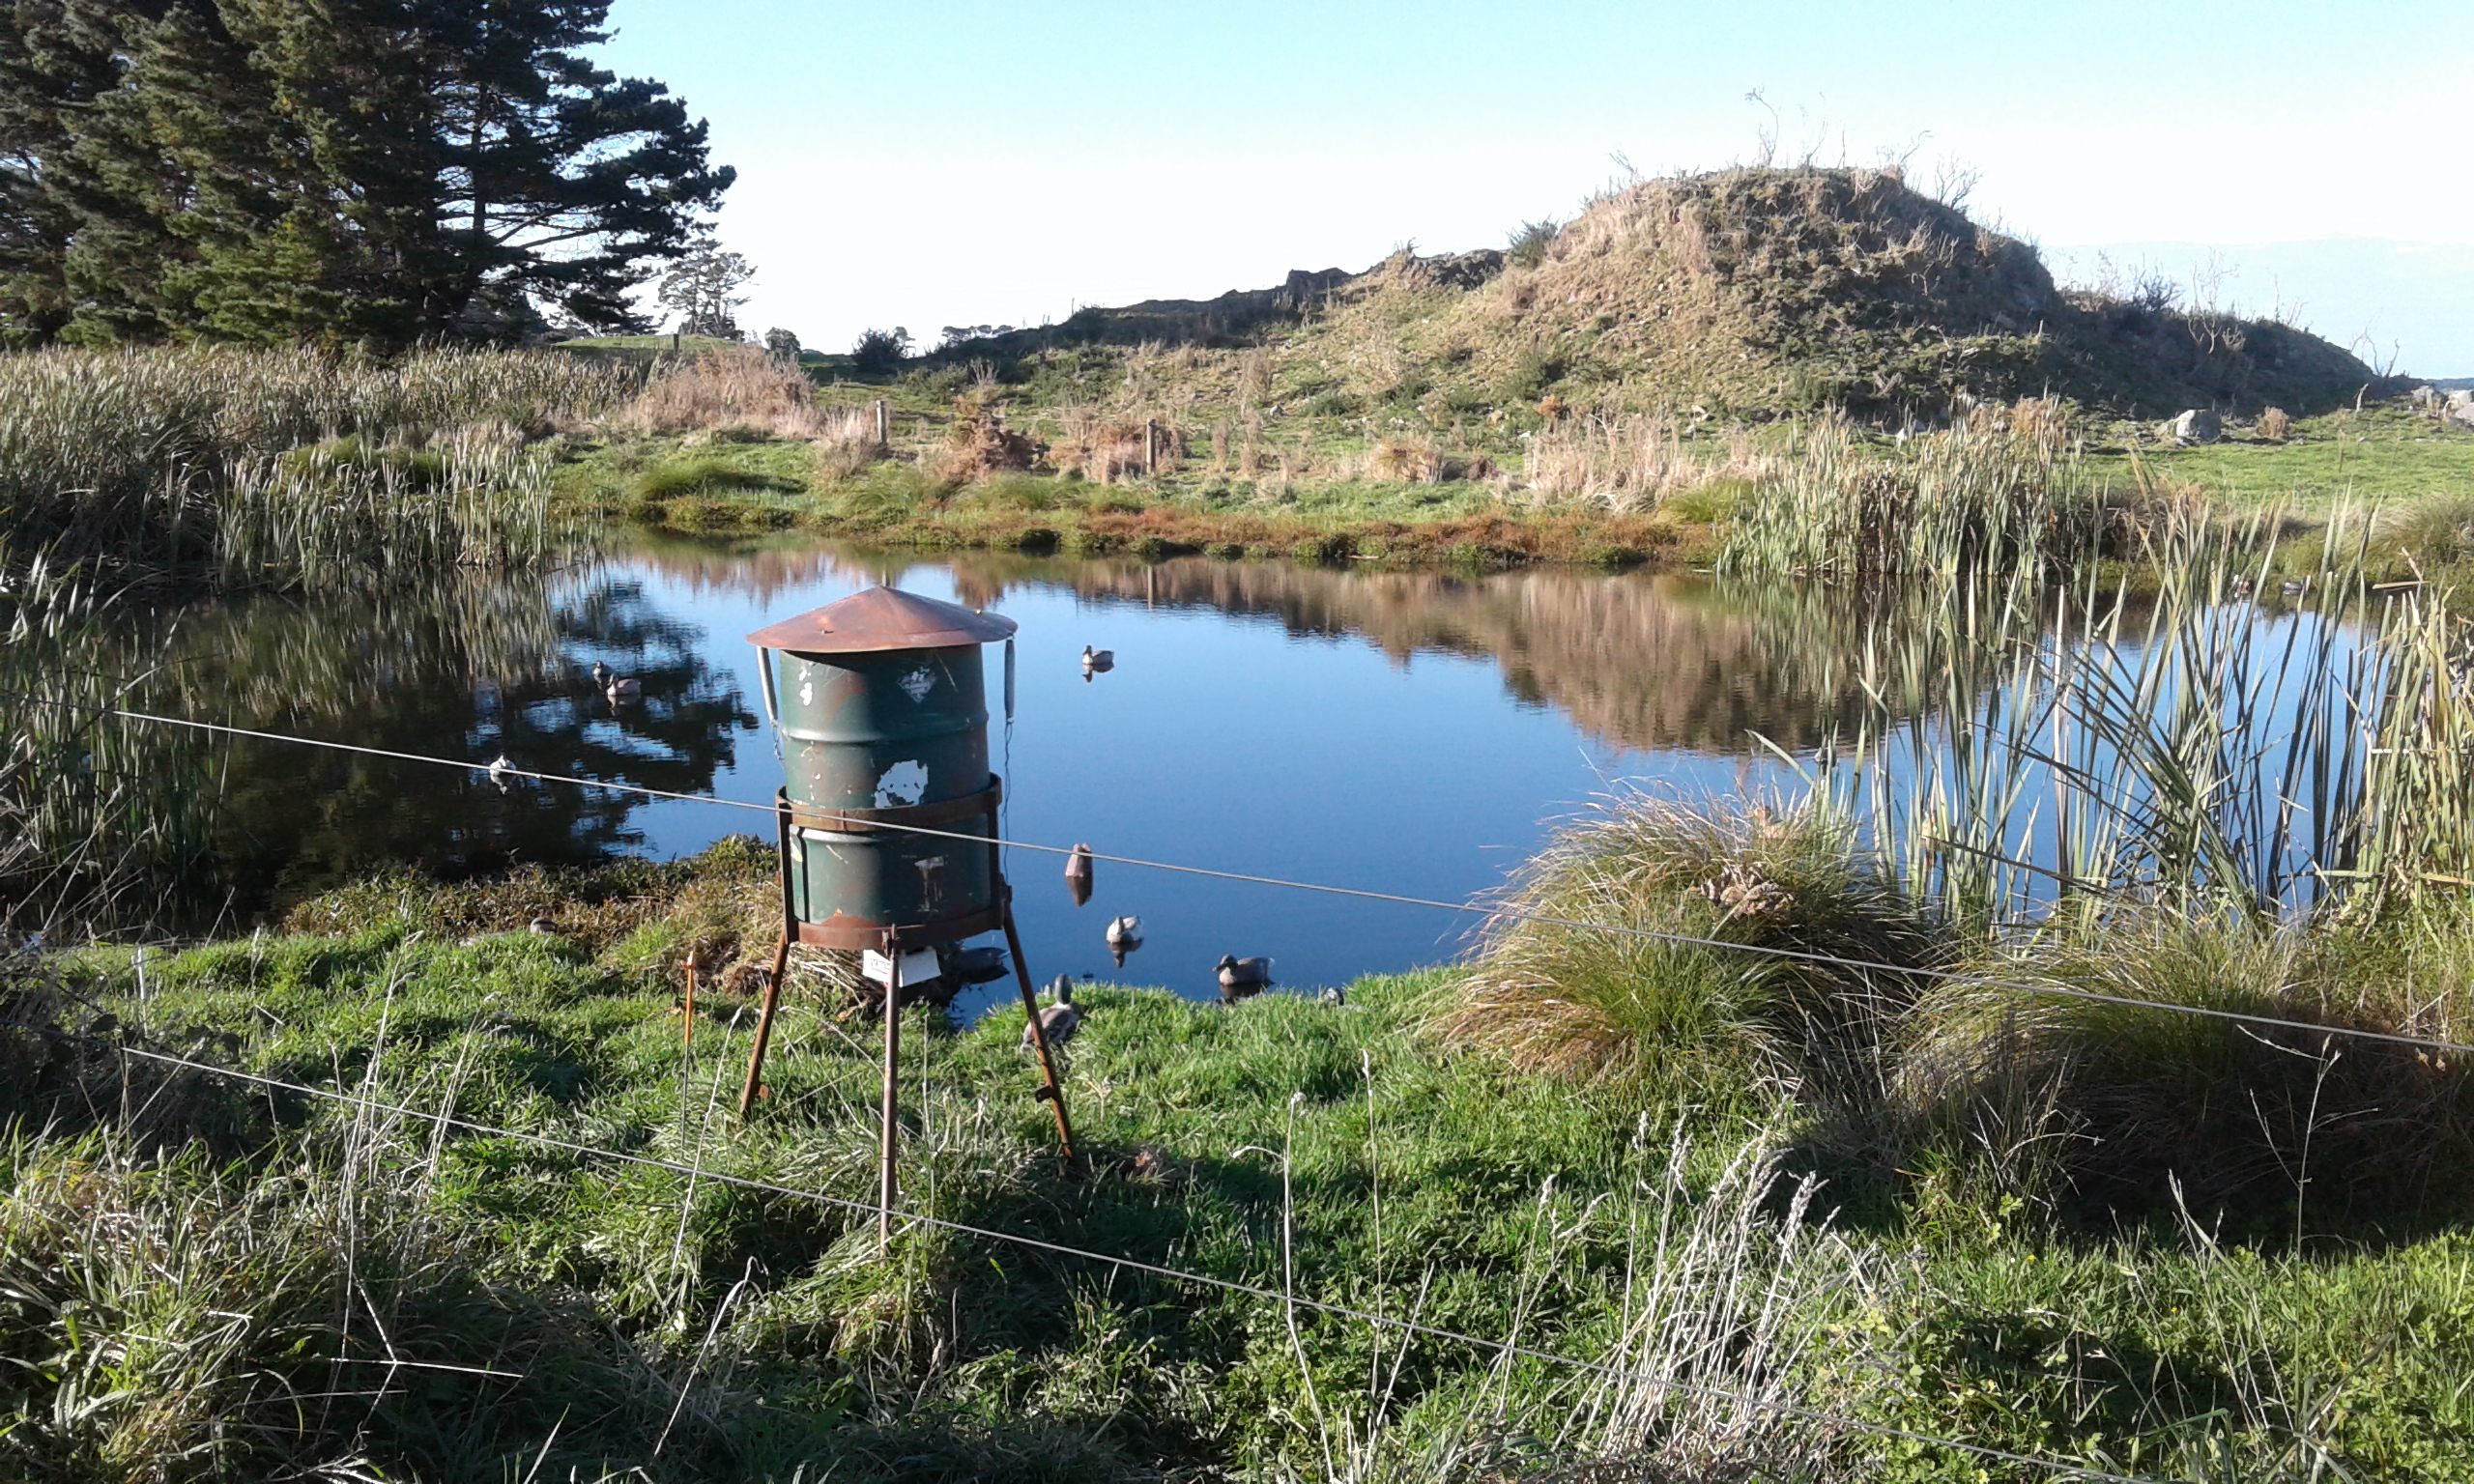 TBB1May19. The fine and calm conditions meant pond shooting was fairly slow on opening weekend